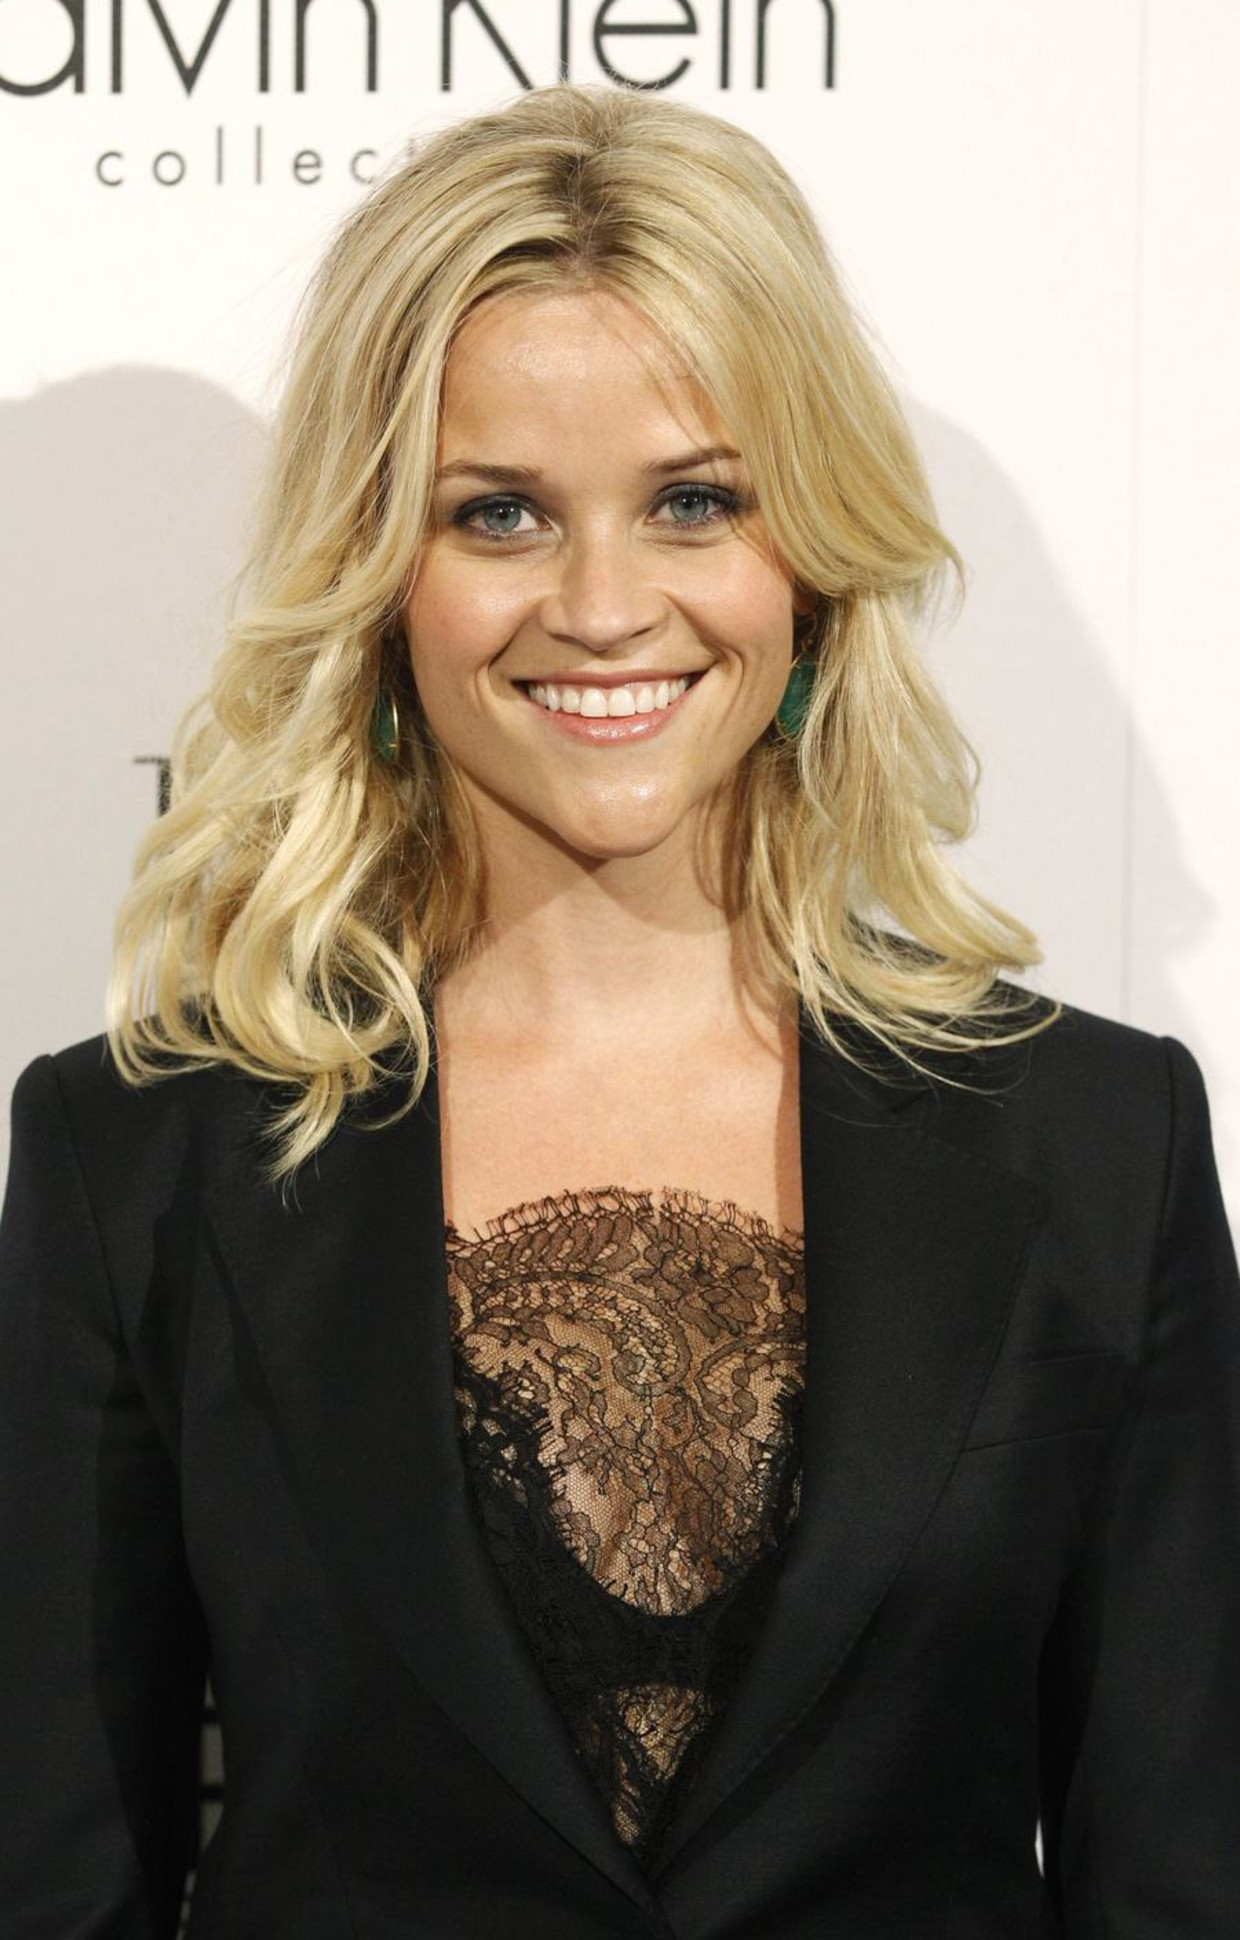 Reese Witherspoon in Sex Tape | De Morgen